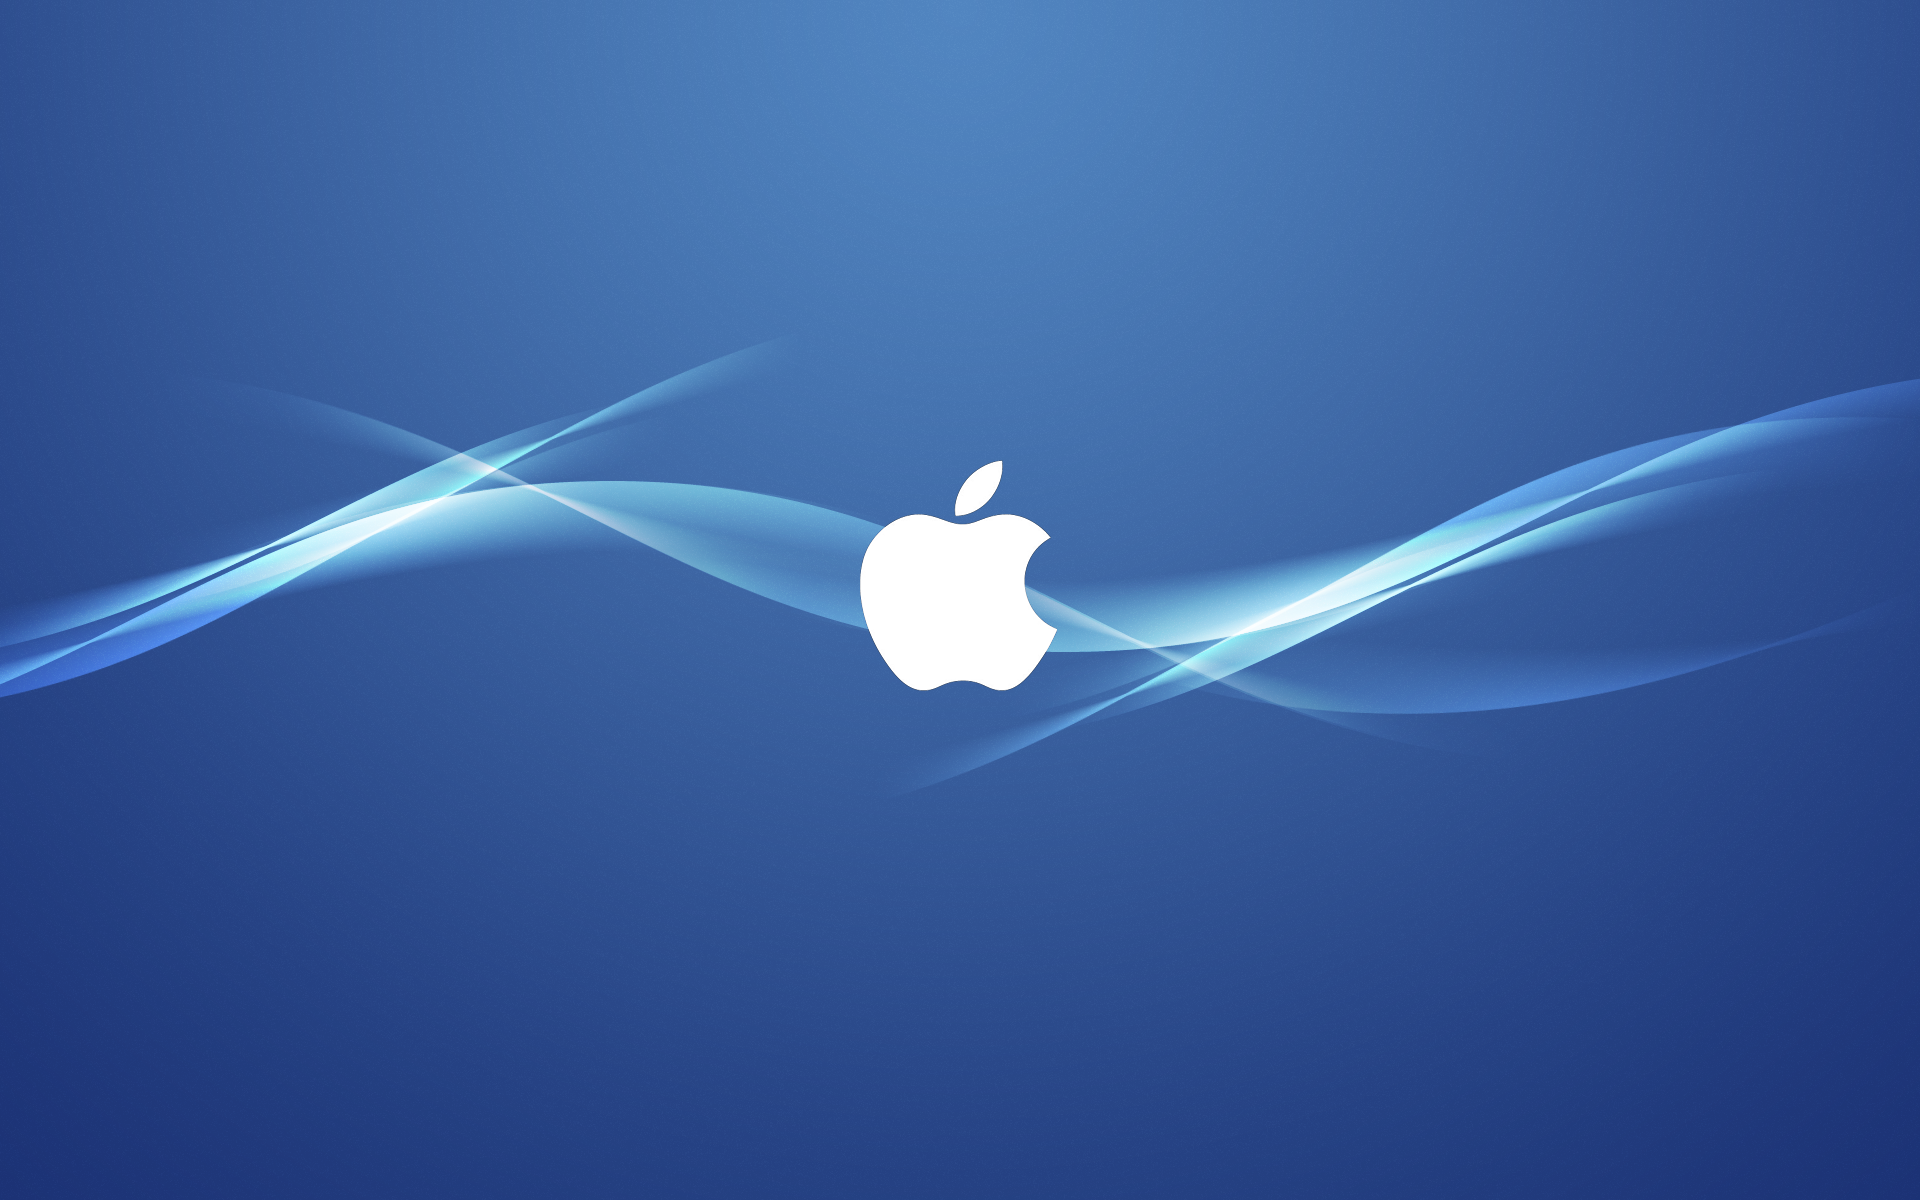 Apple Wallpapers Mac Download 1920x1200